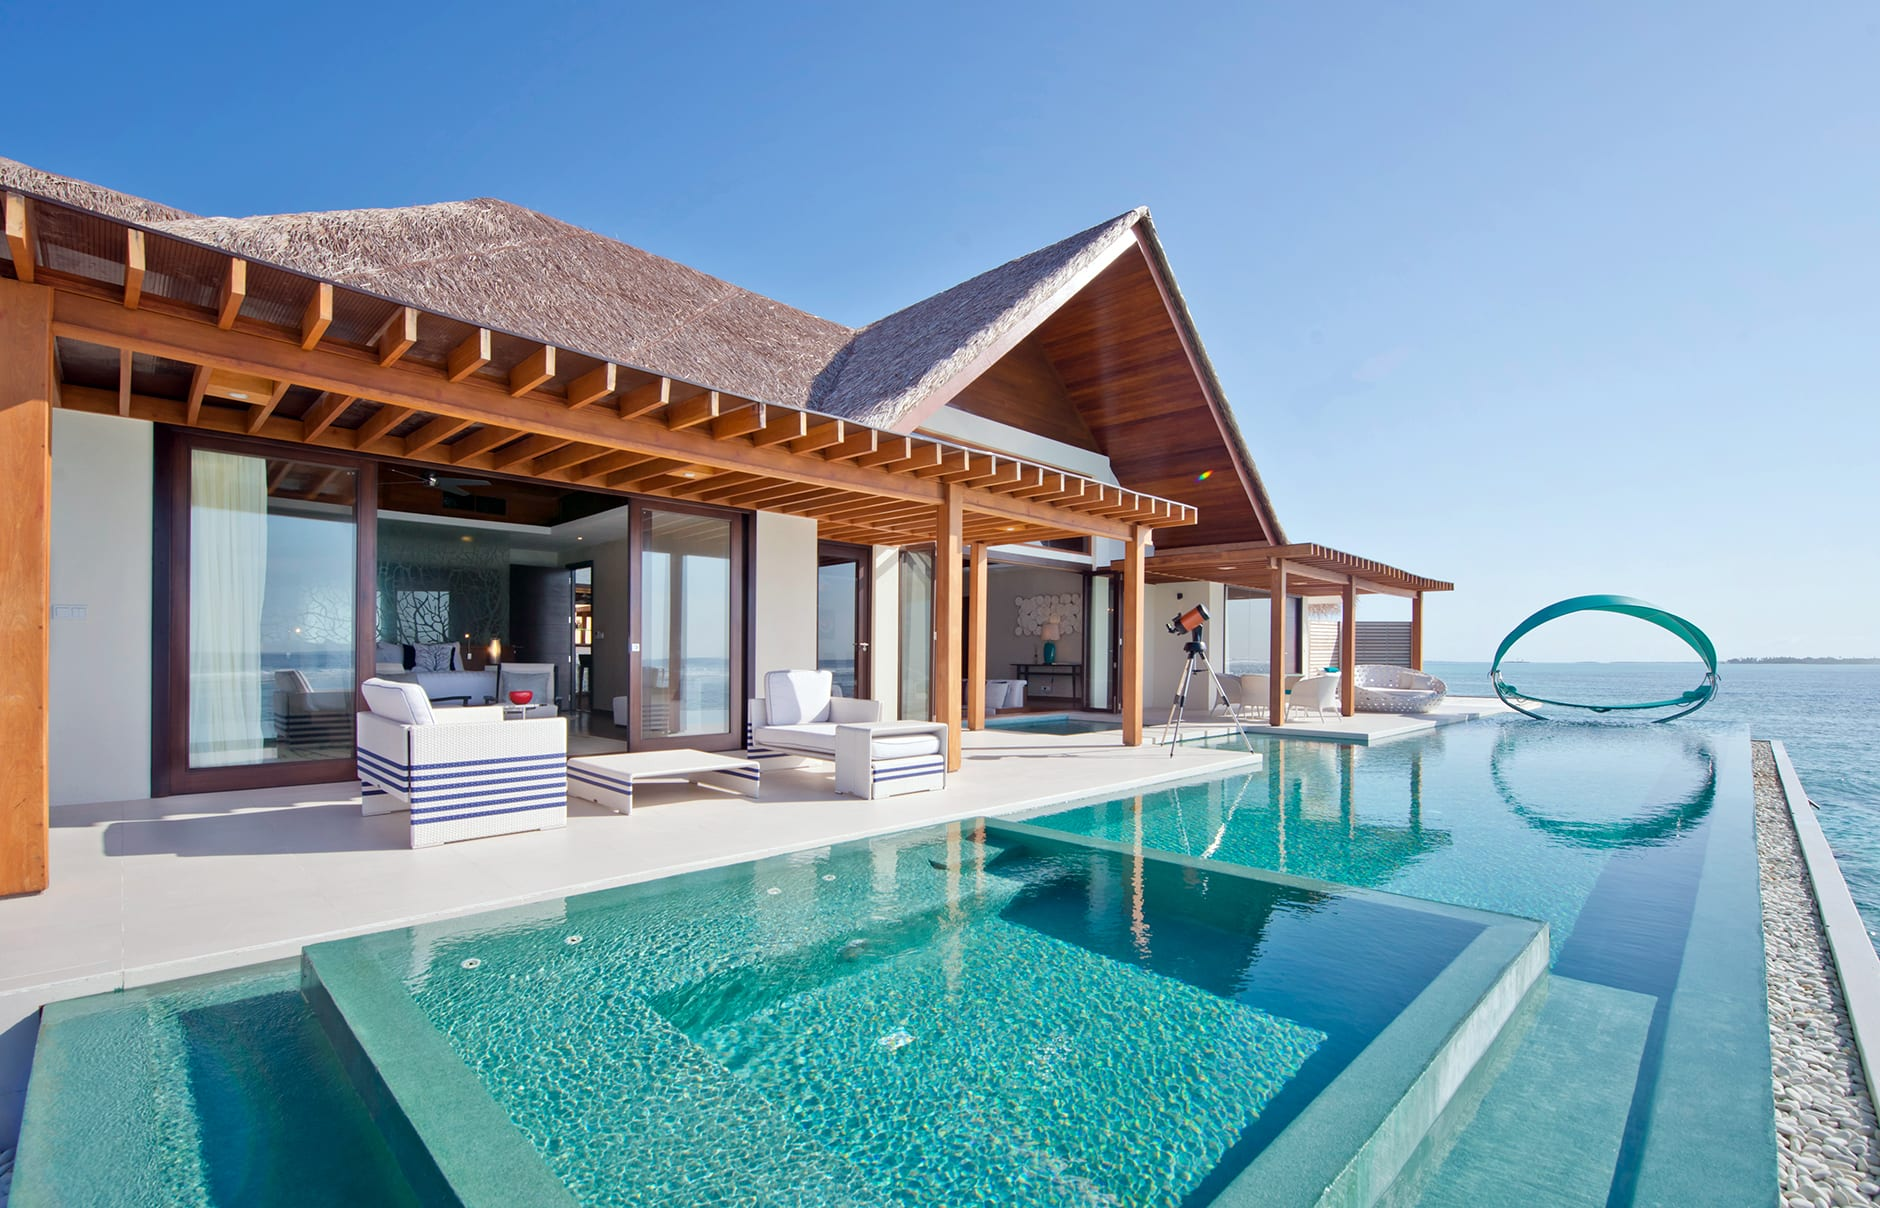 Niyama Private Islands Maldives Luxury Hotel Review By